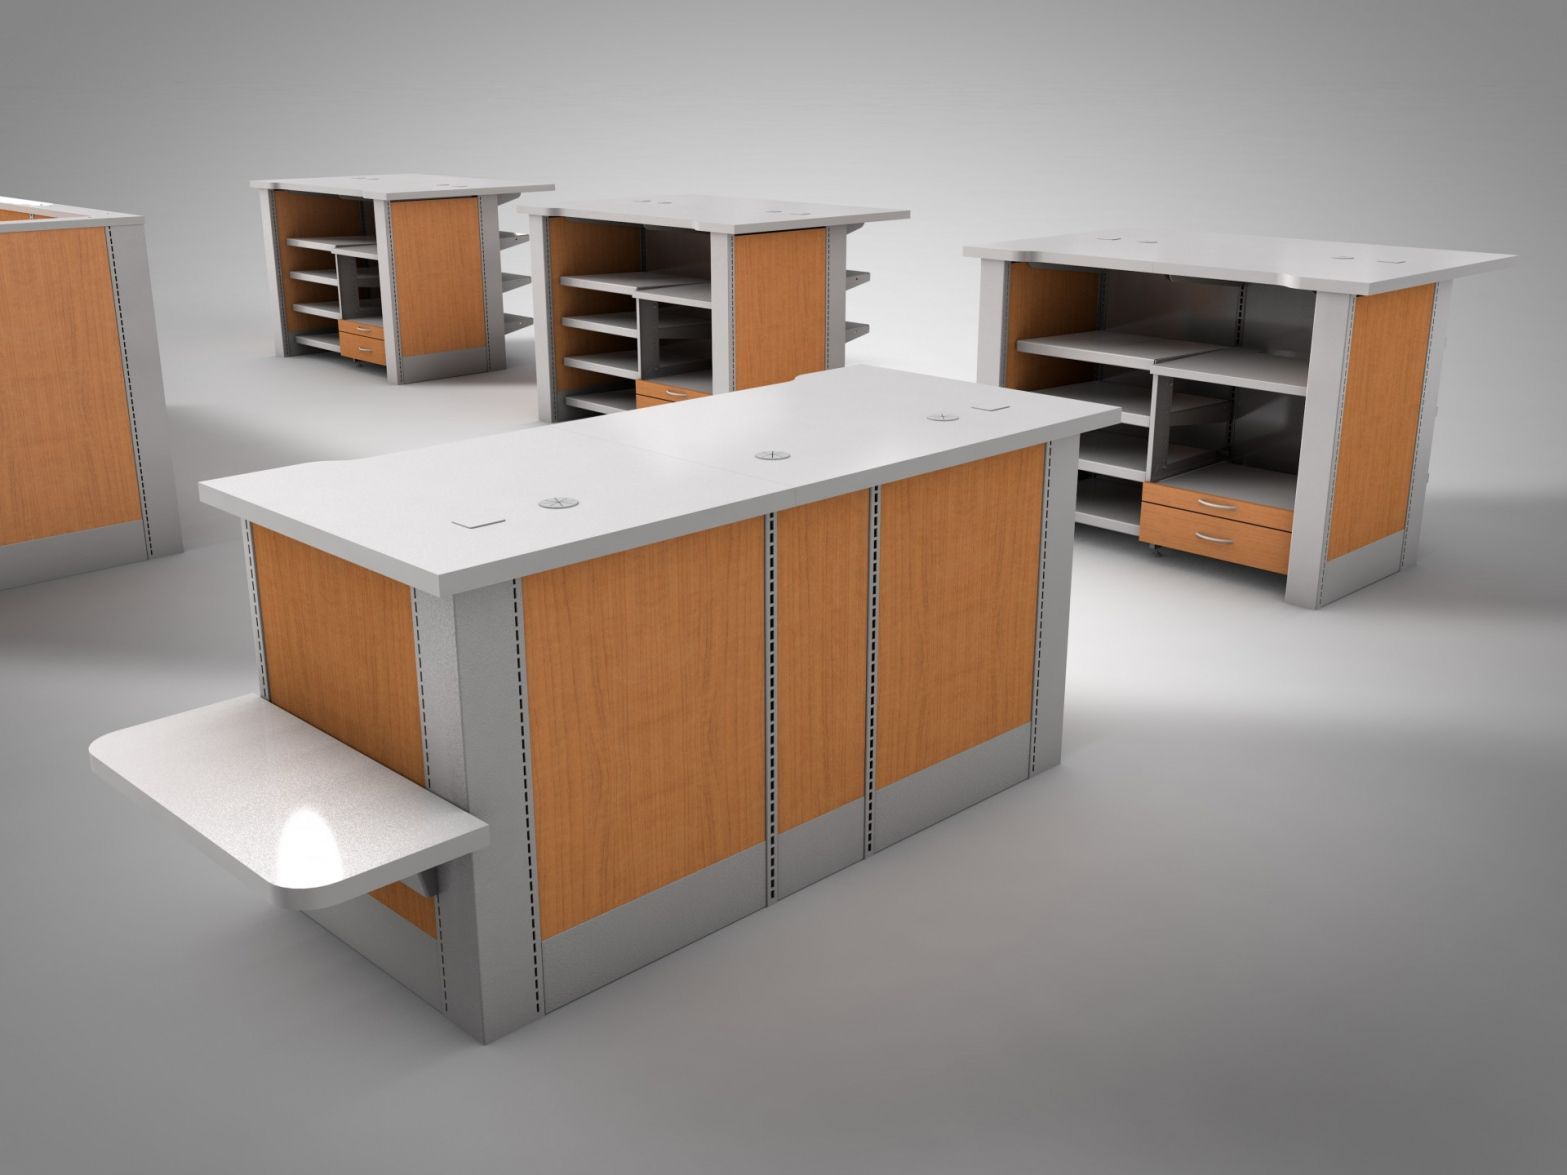 home depot office cabinets. 2019 Home Depot Office Desk - Furniture For Check More At Http:/ Cabinets E